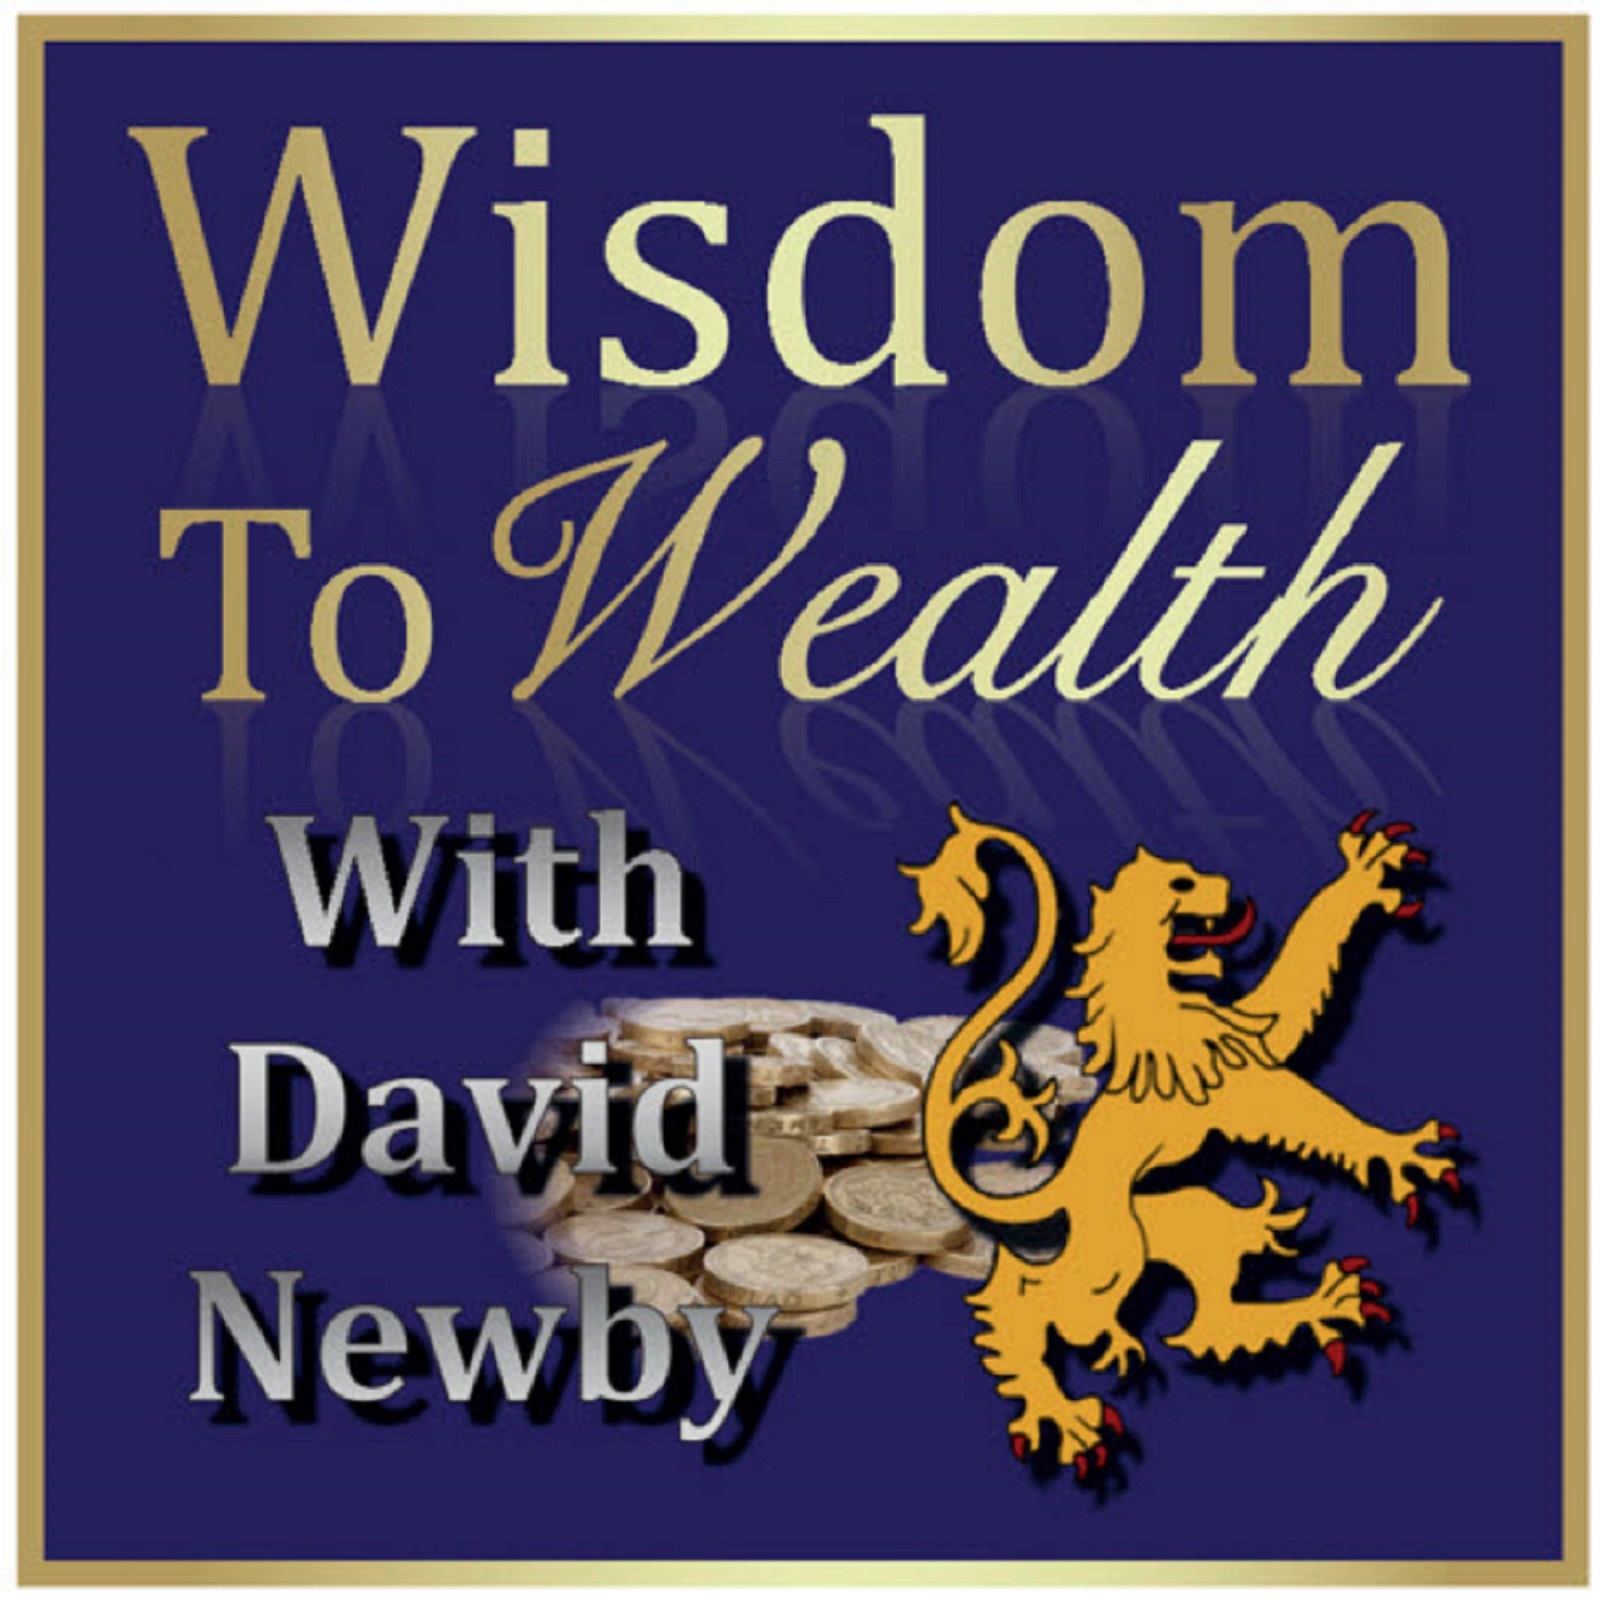 Wisdom To Wealth podcast show art